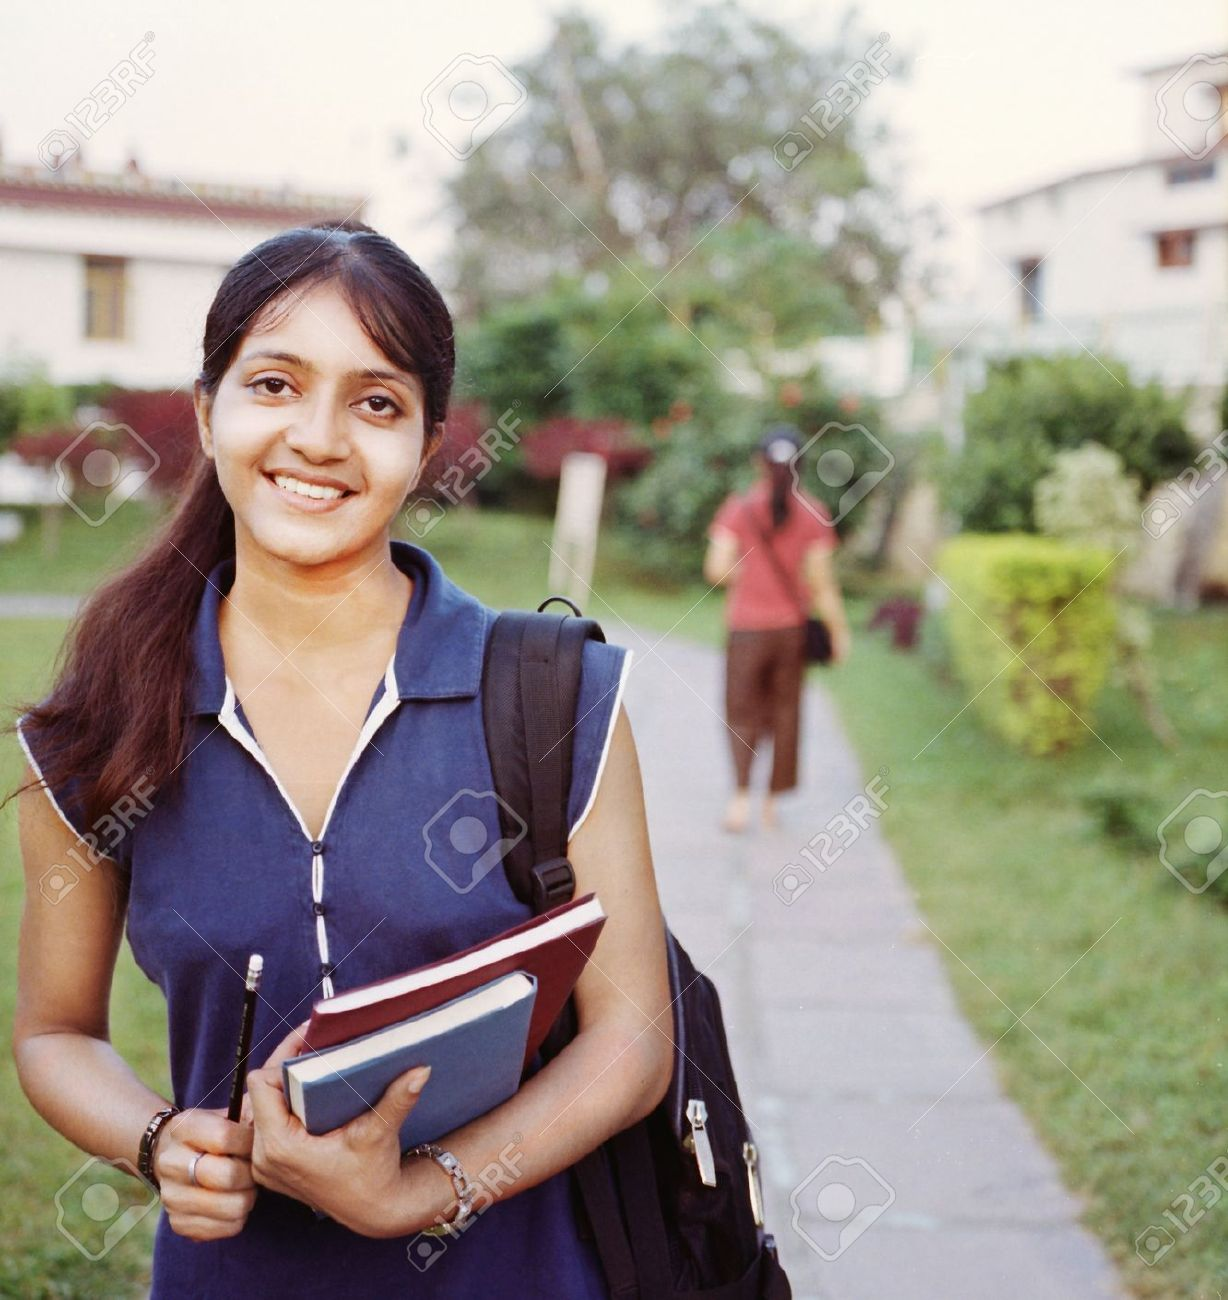 happy indian college student walking in the campus, with books